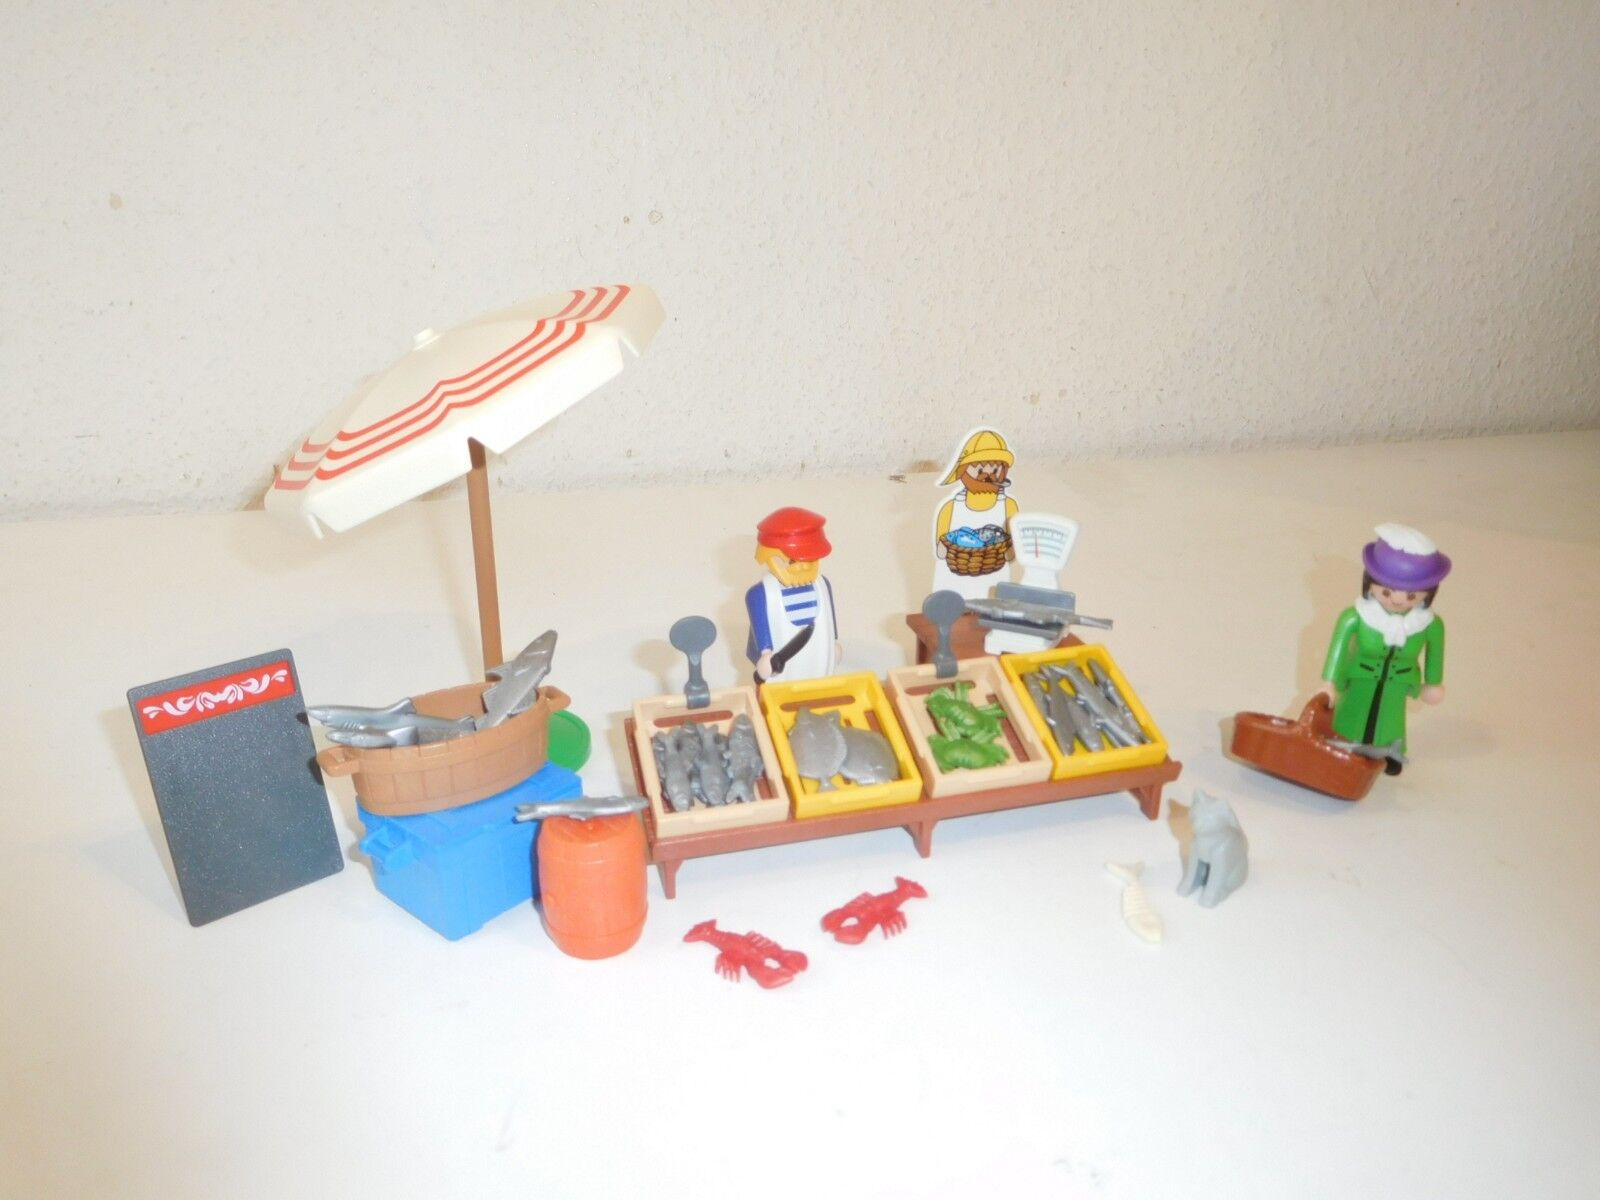 5342 for 5300 bambolahouse PLAYMOBIL